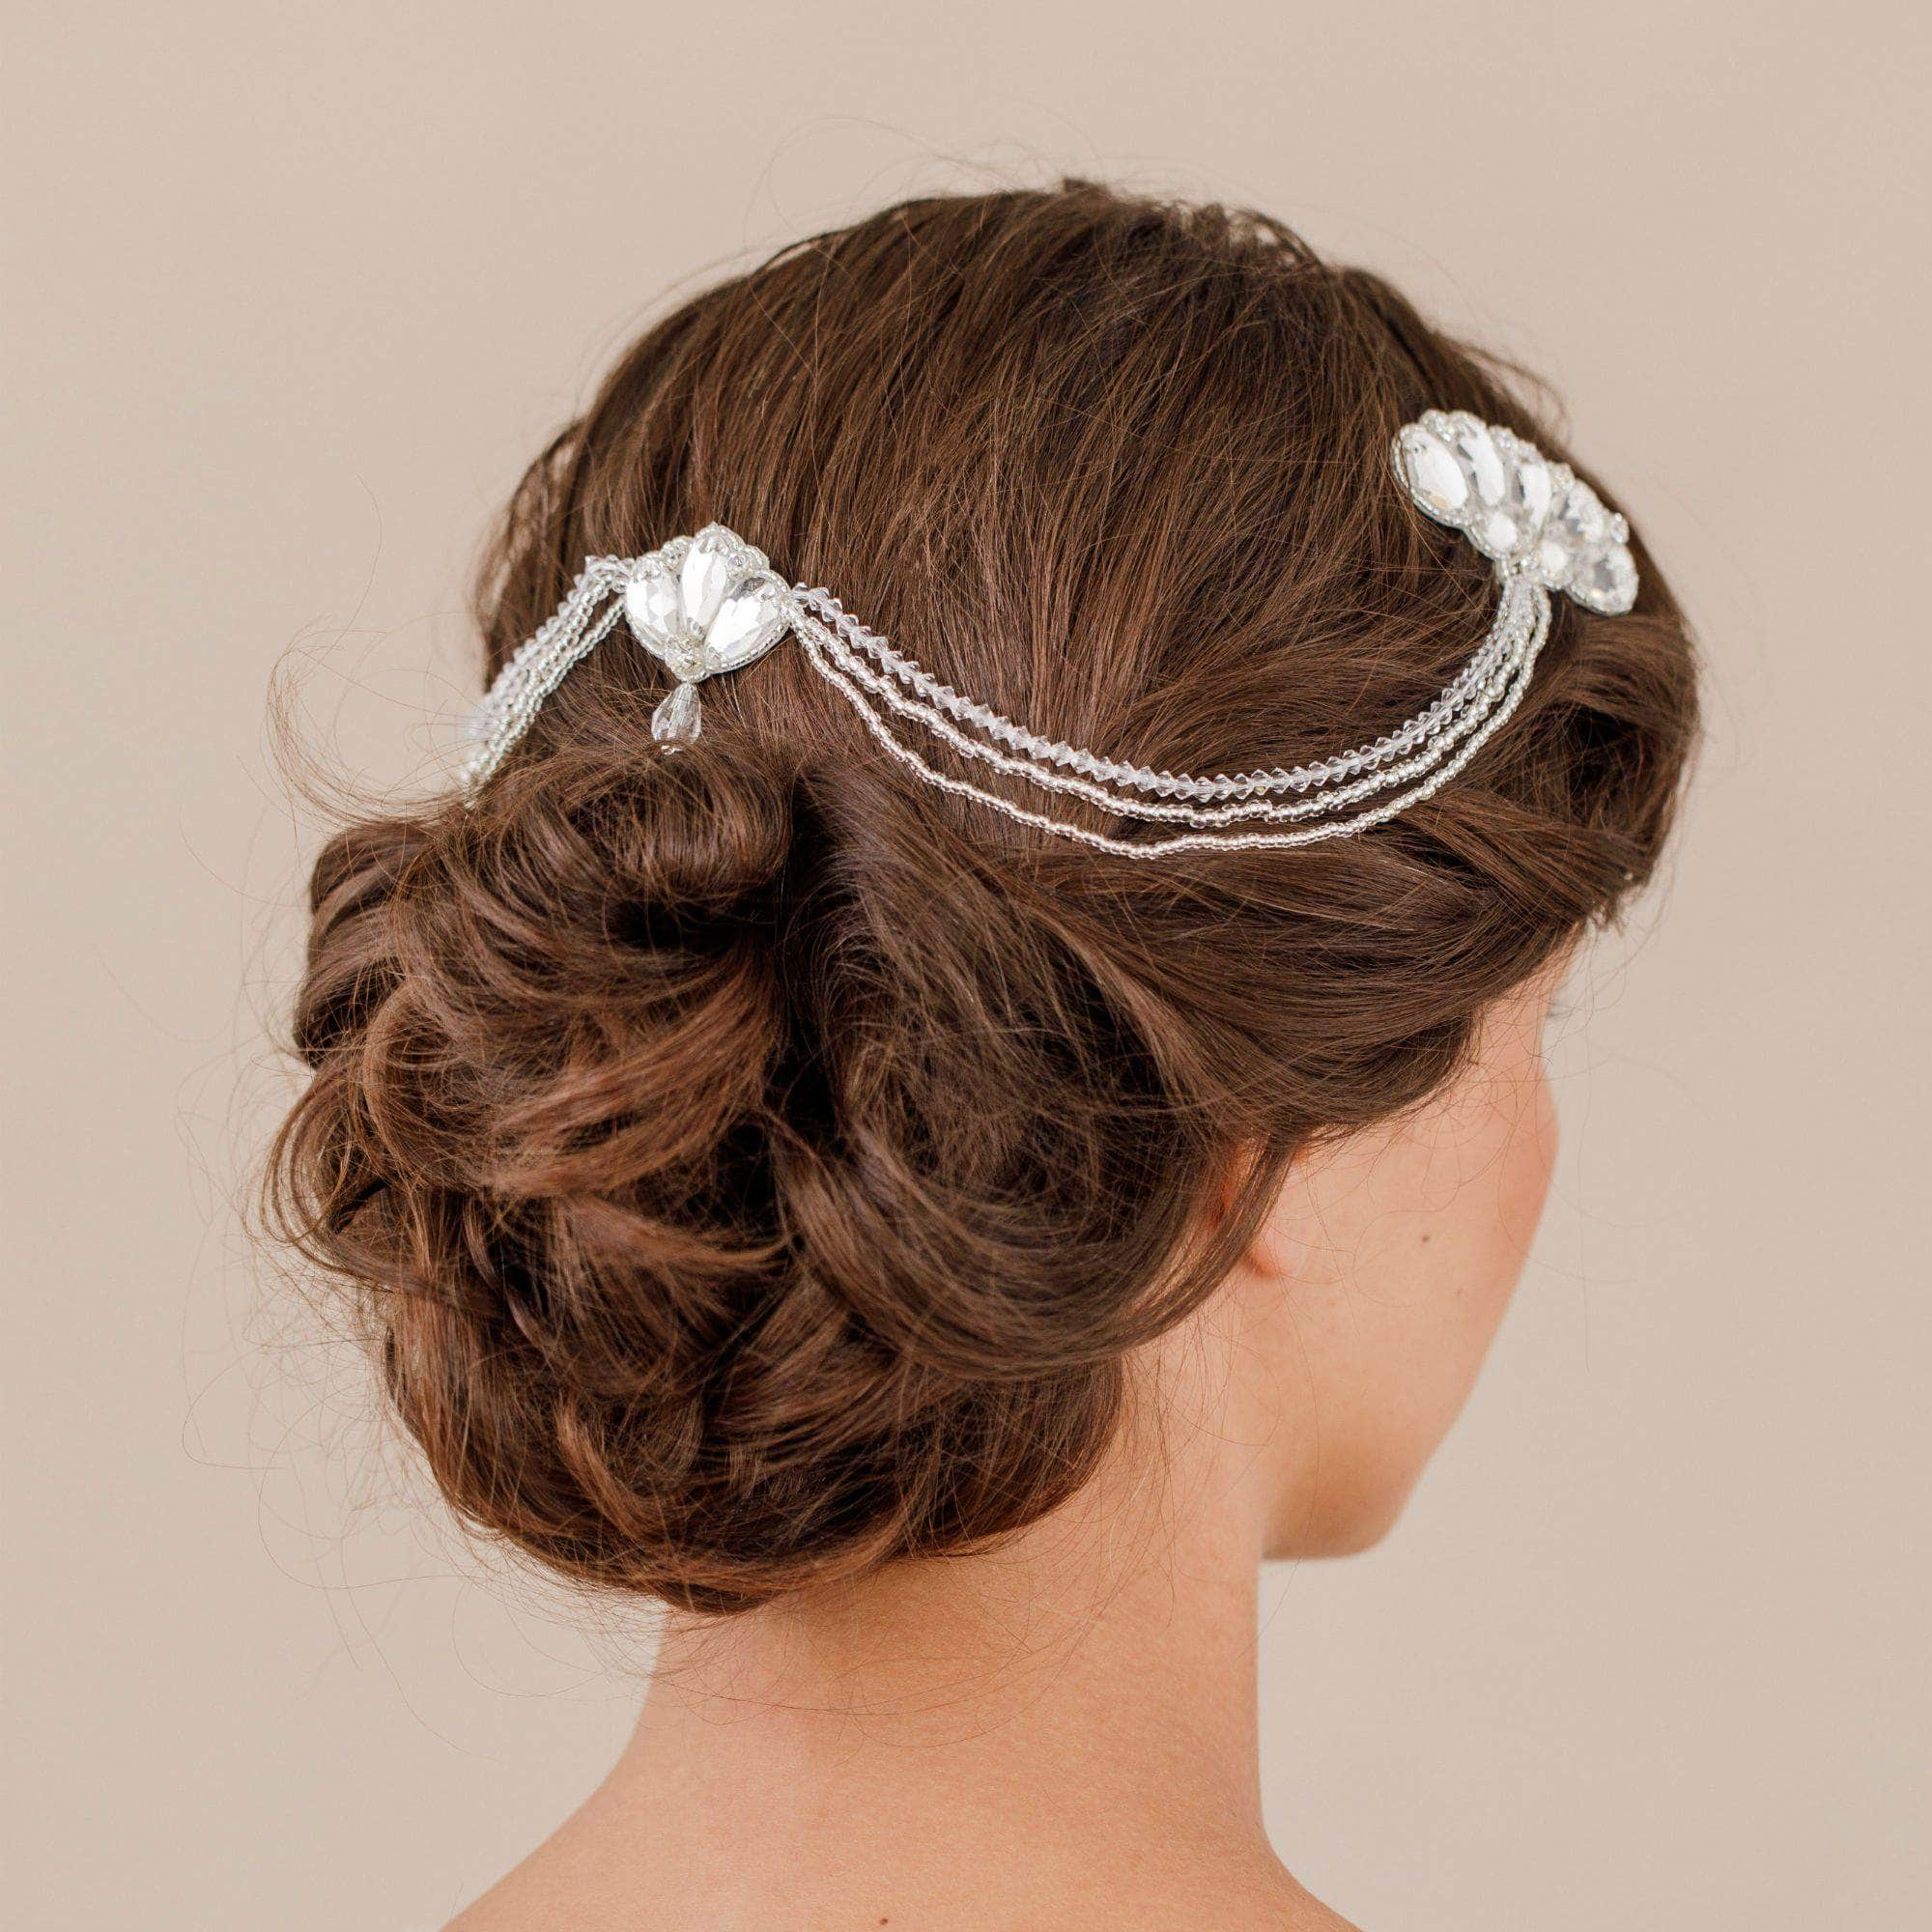 1920s deco wedding hair comb with chains